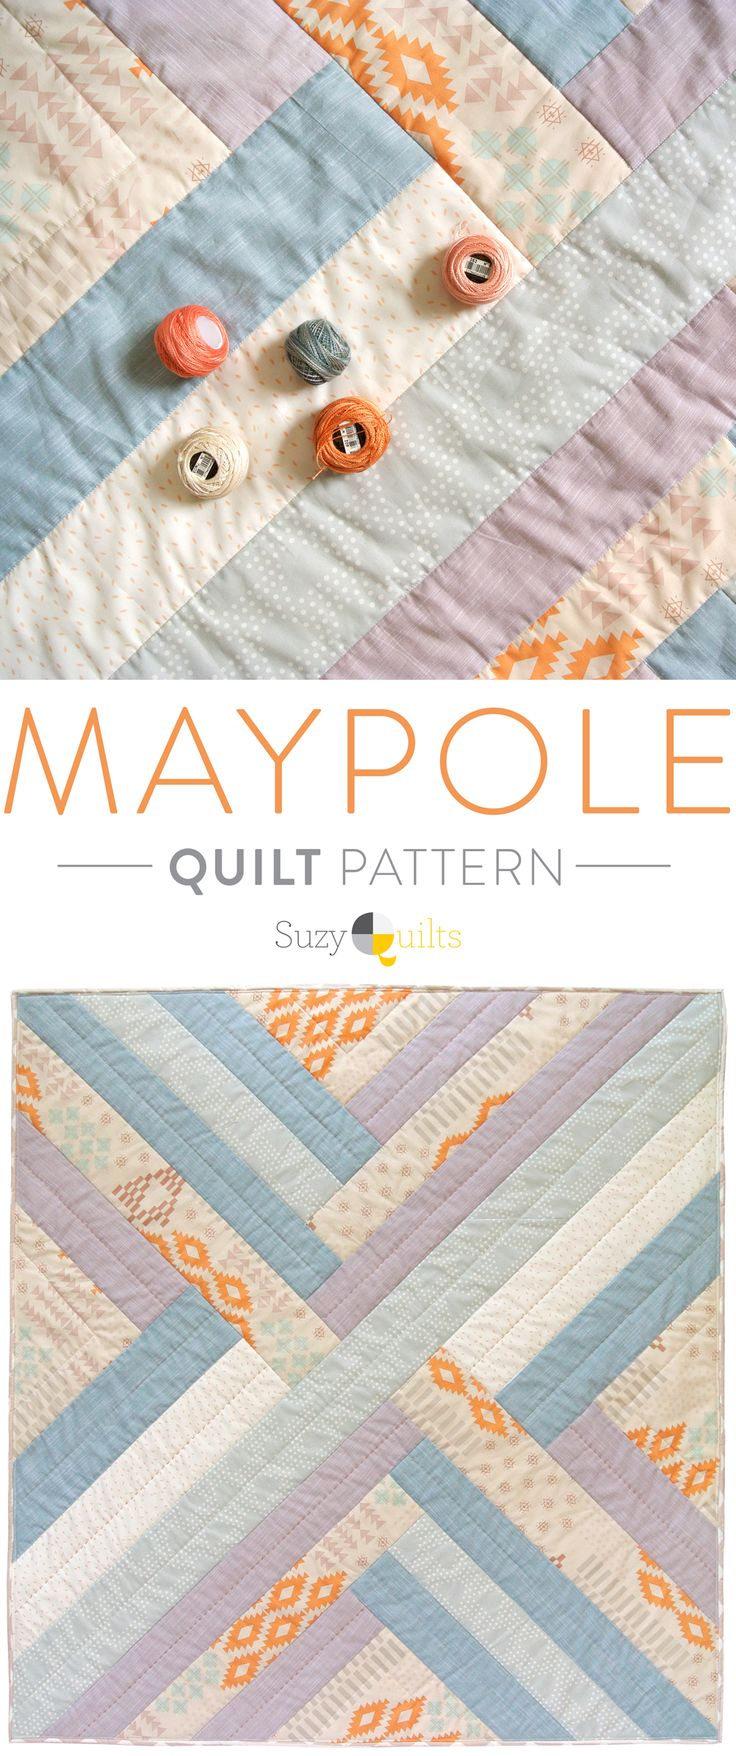 The Maypole Quilt pattern is a simple, clean design with bold impact. Make it in a variety of colors and see how different they all look!